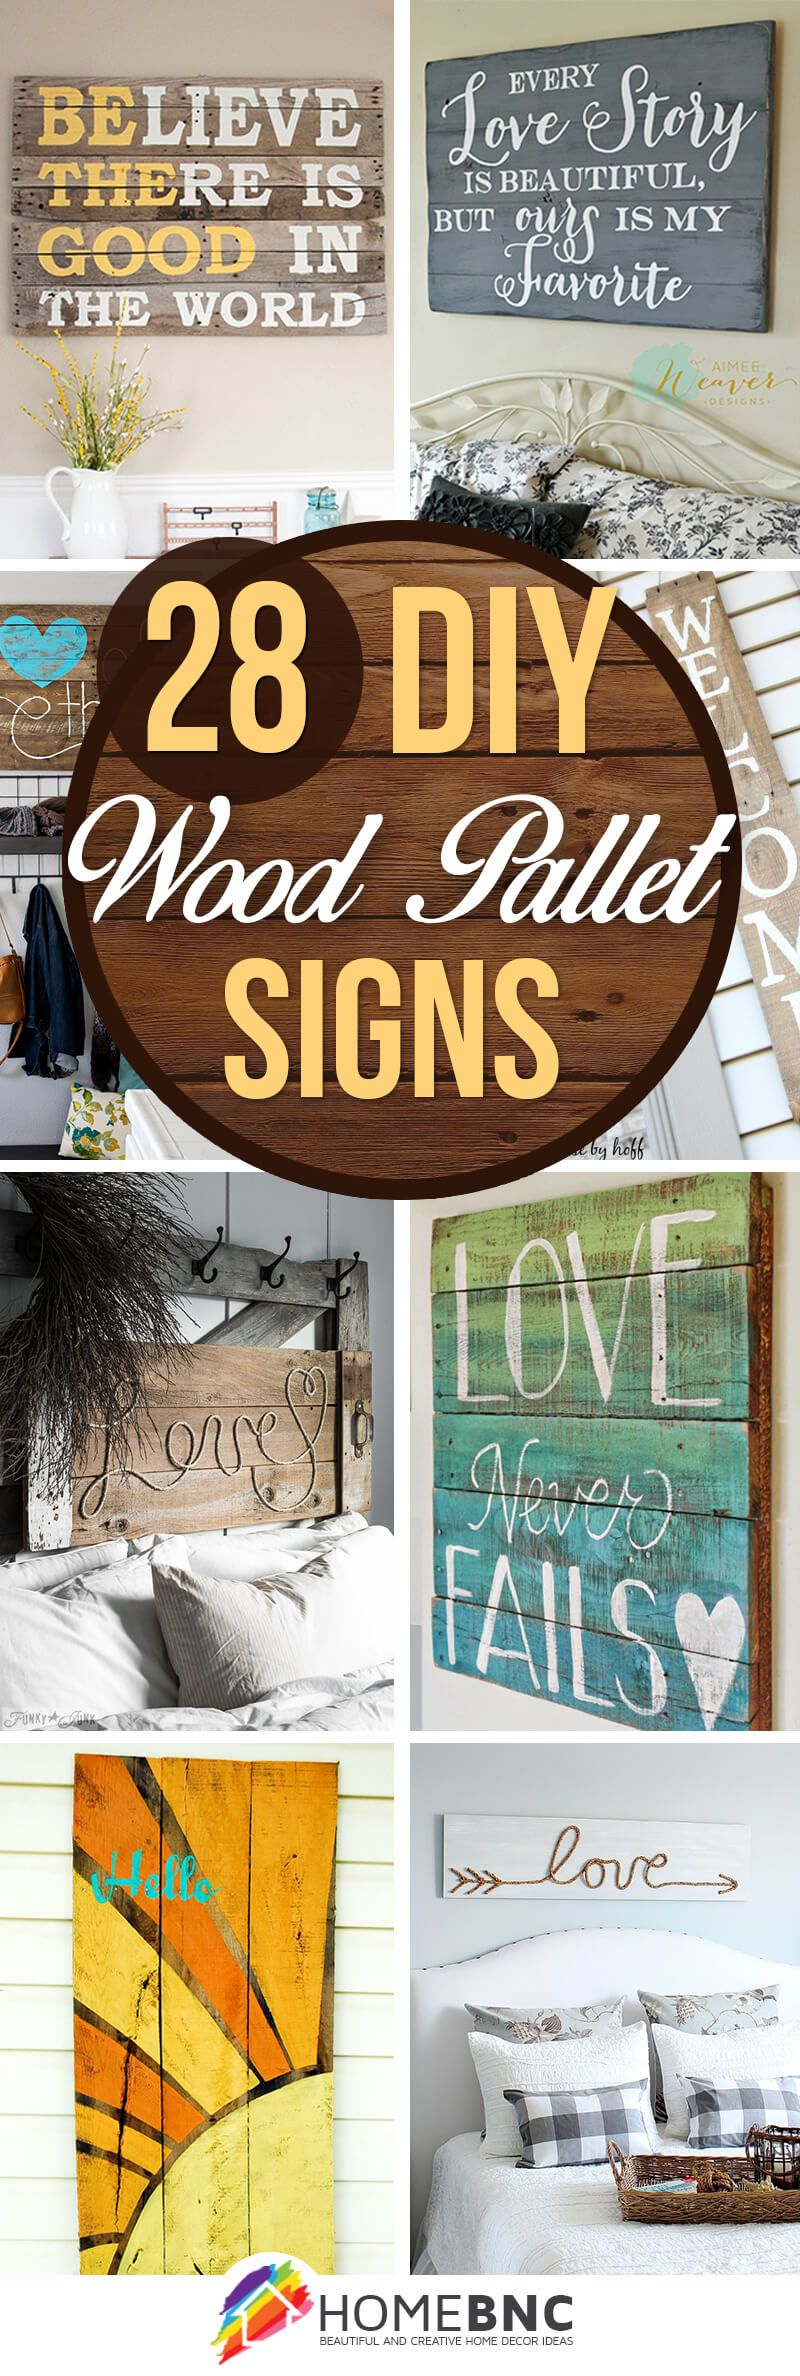 Wood Sign Design Ideas touch our floors please remove your shoes at the door primitive wood sign custom colors on etsy interior design 2012 room design design design ideas 28 Fun Diy Pallet Sign Projects You Should Try